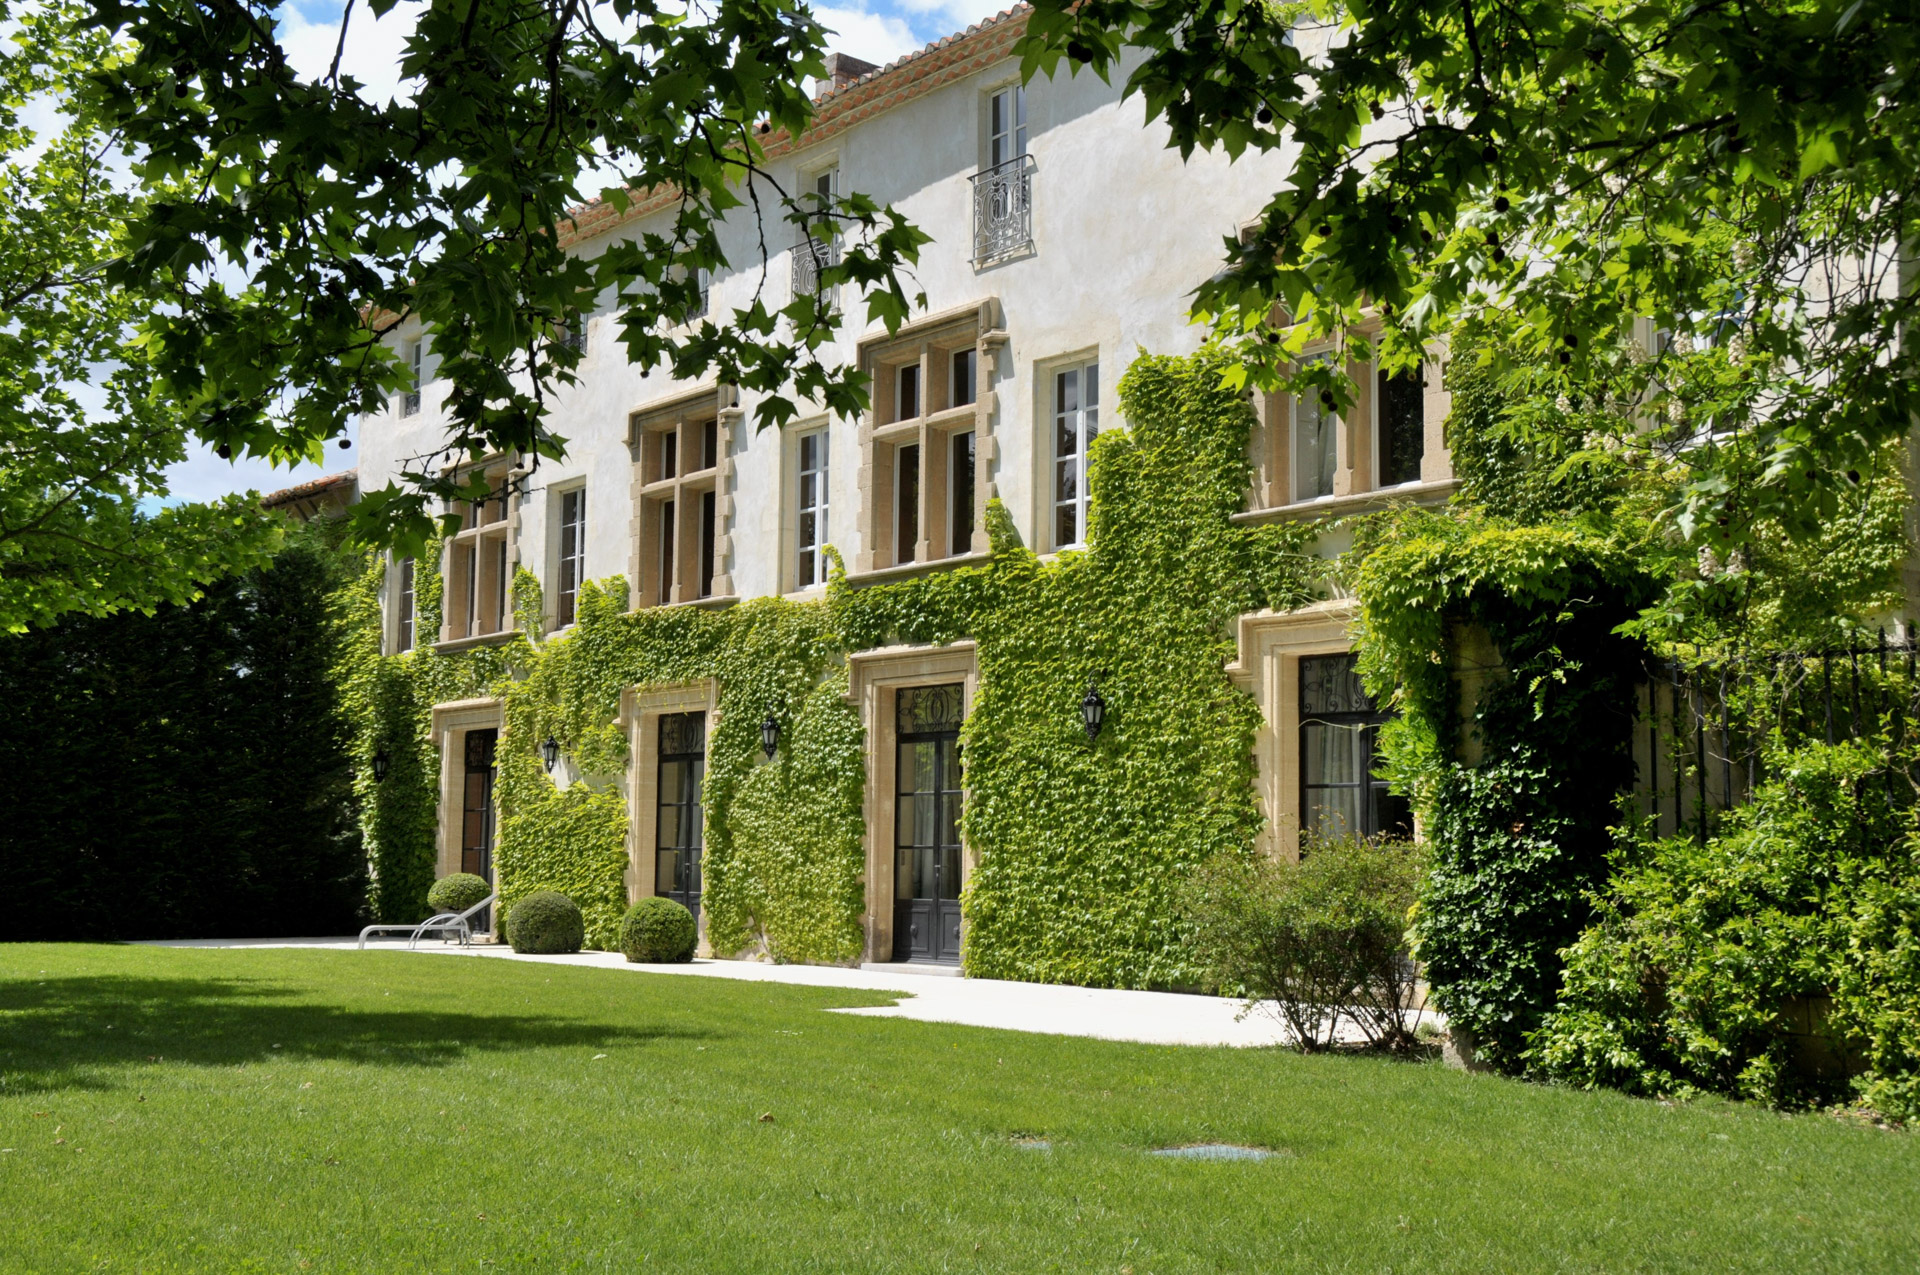 Villeneuve-les-Avignon close by, elegant 16th century Chateau, beautiful grounds, at just minutes from the Papal Palace